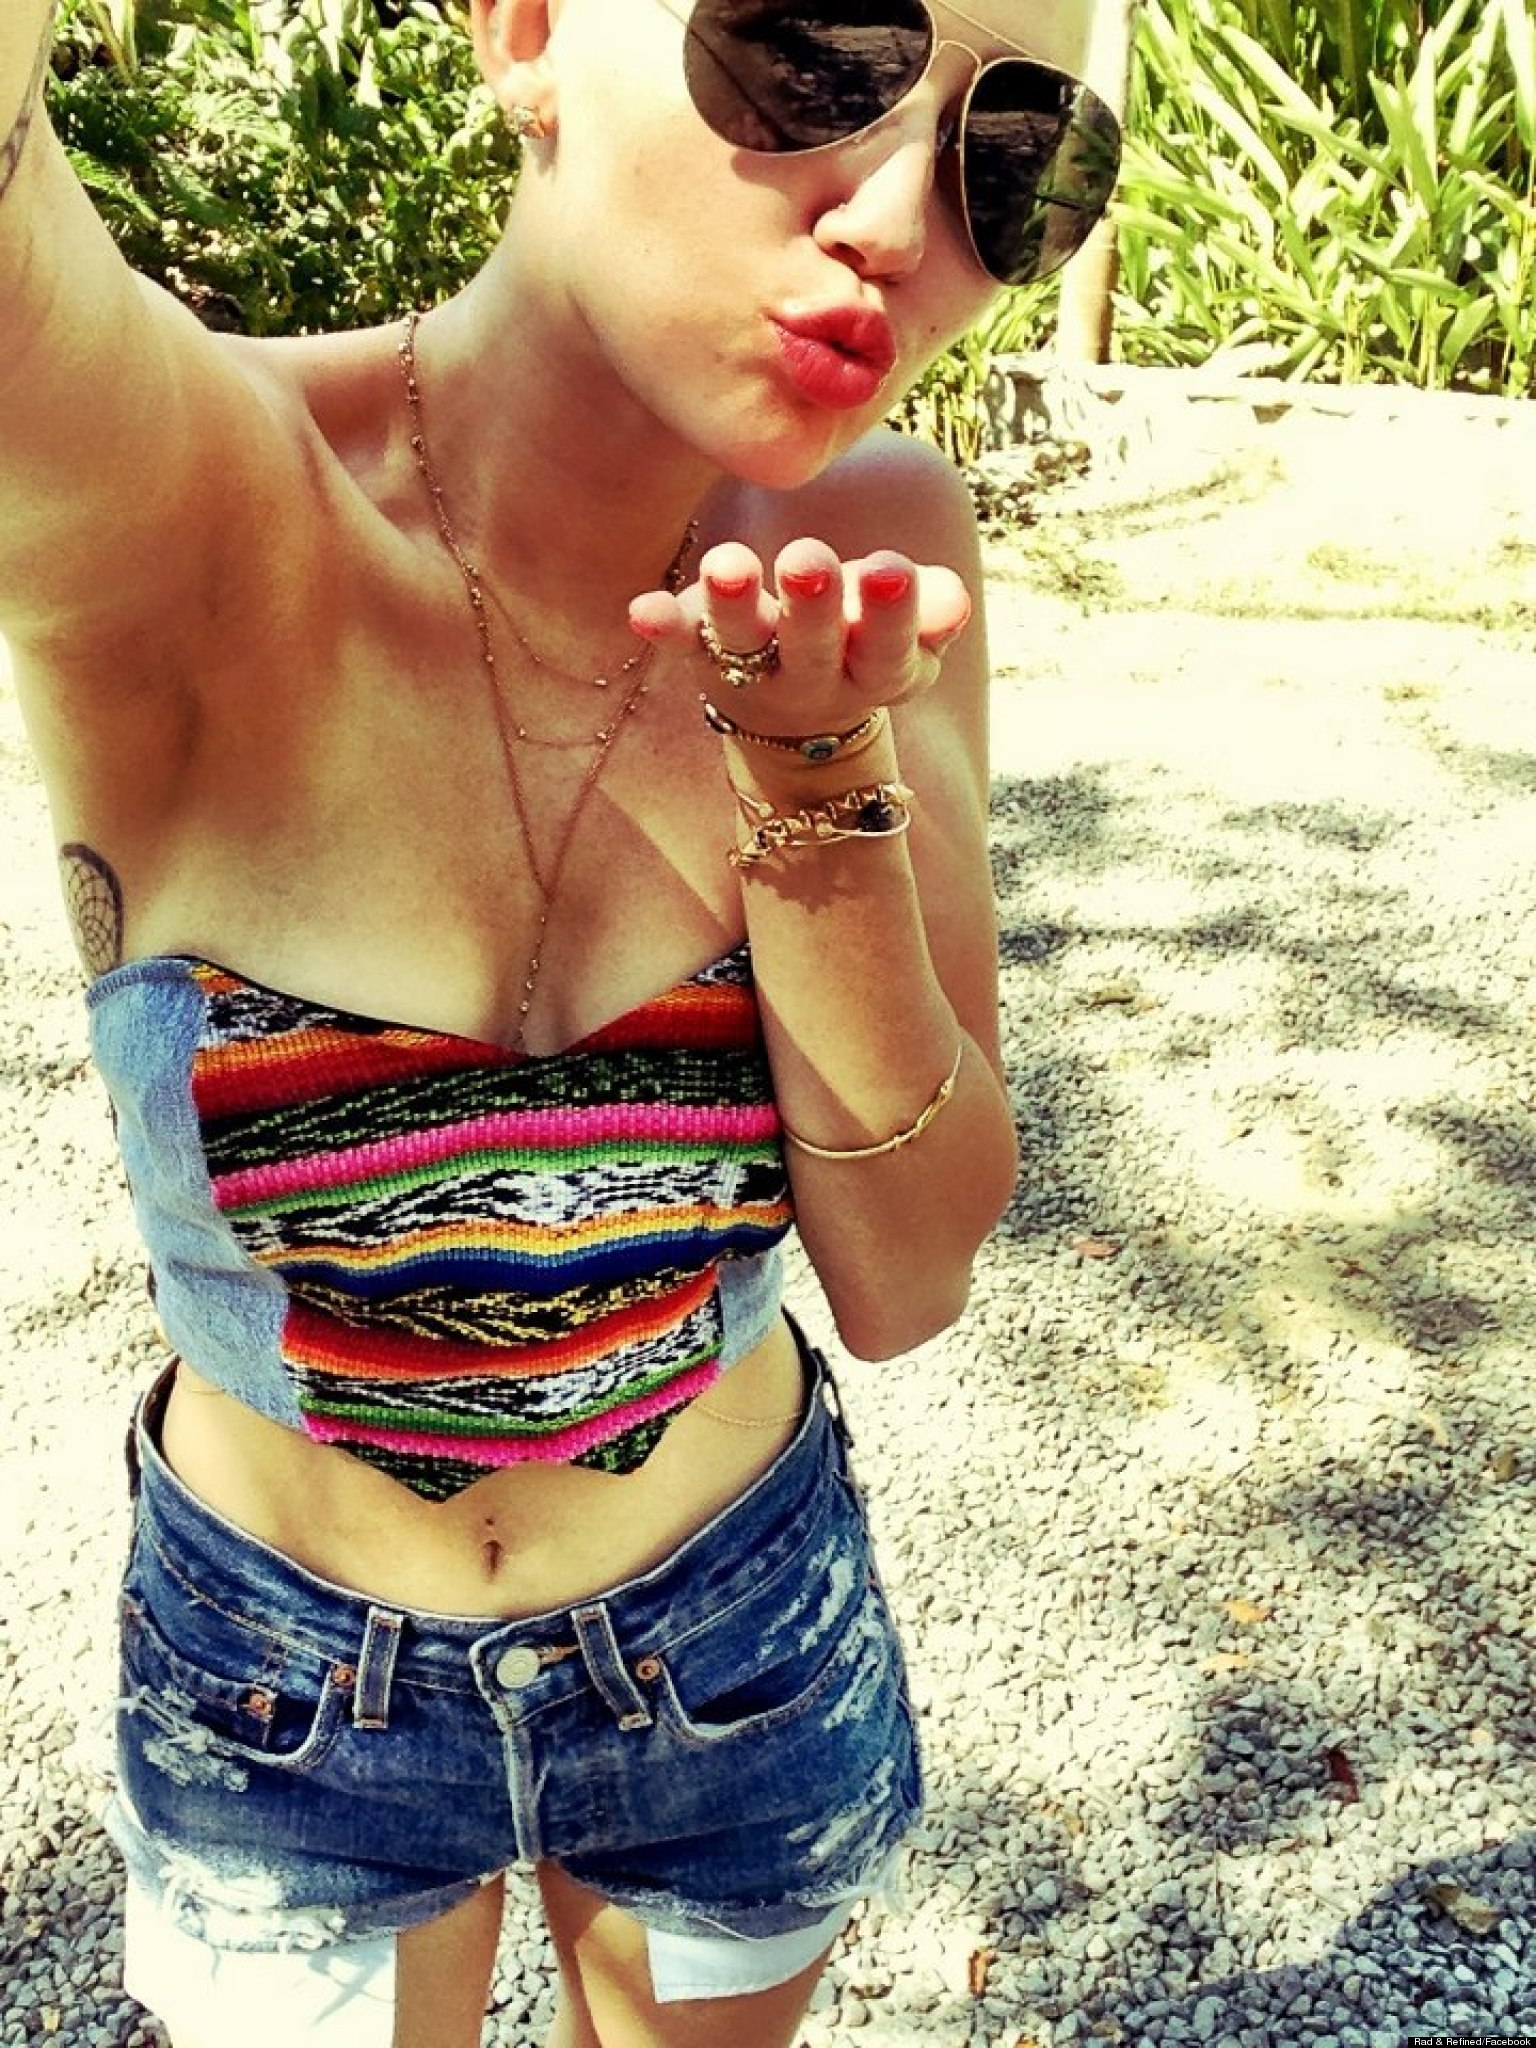 Miley Cyrus' Abs: Singer Flashes Toned Tummy In Costa Rica ...